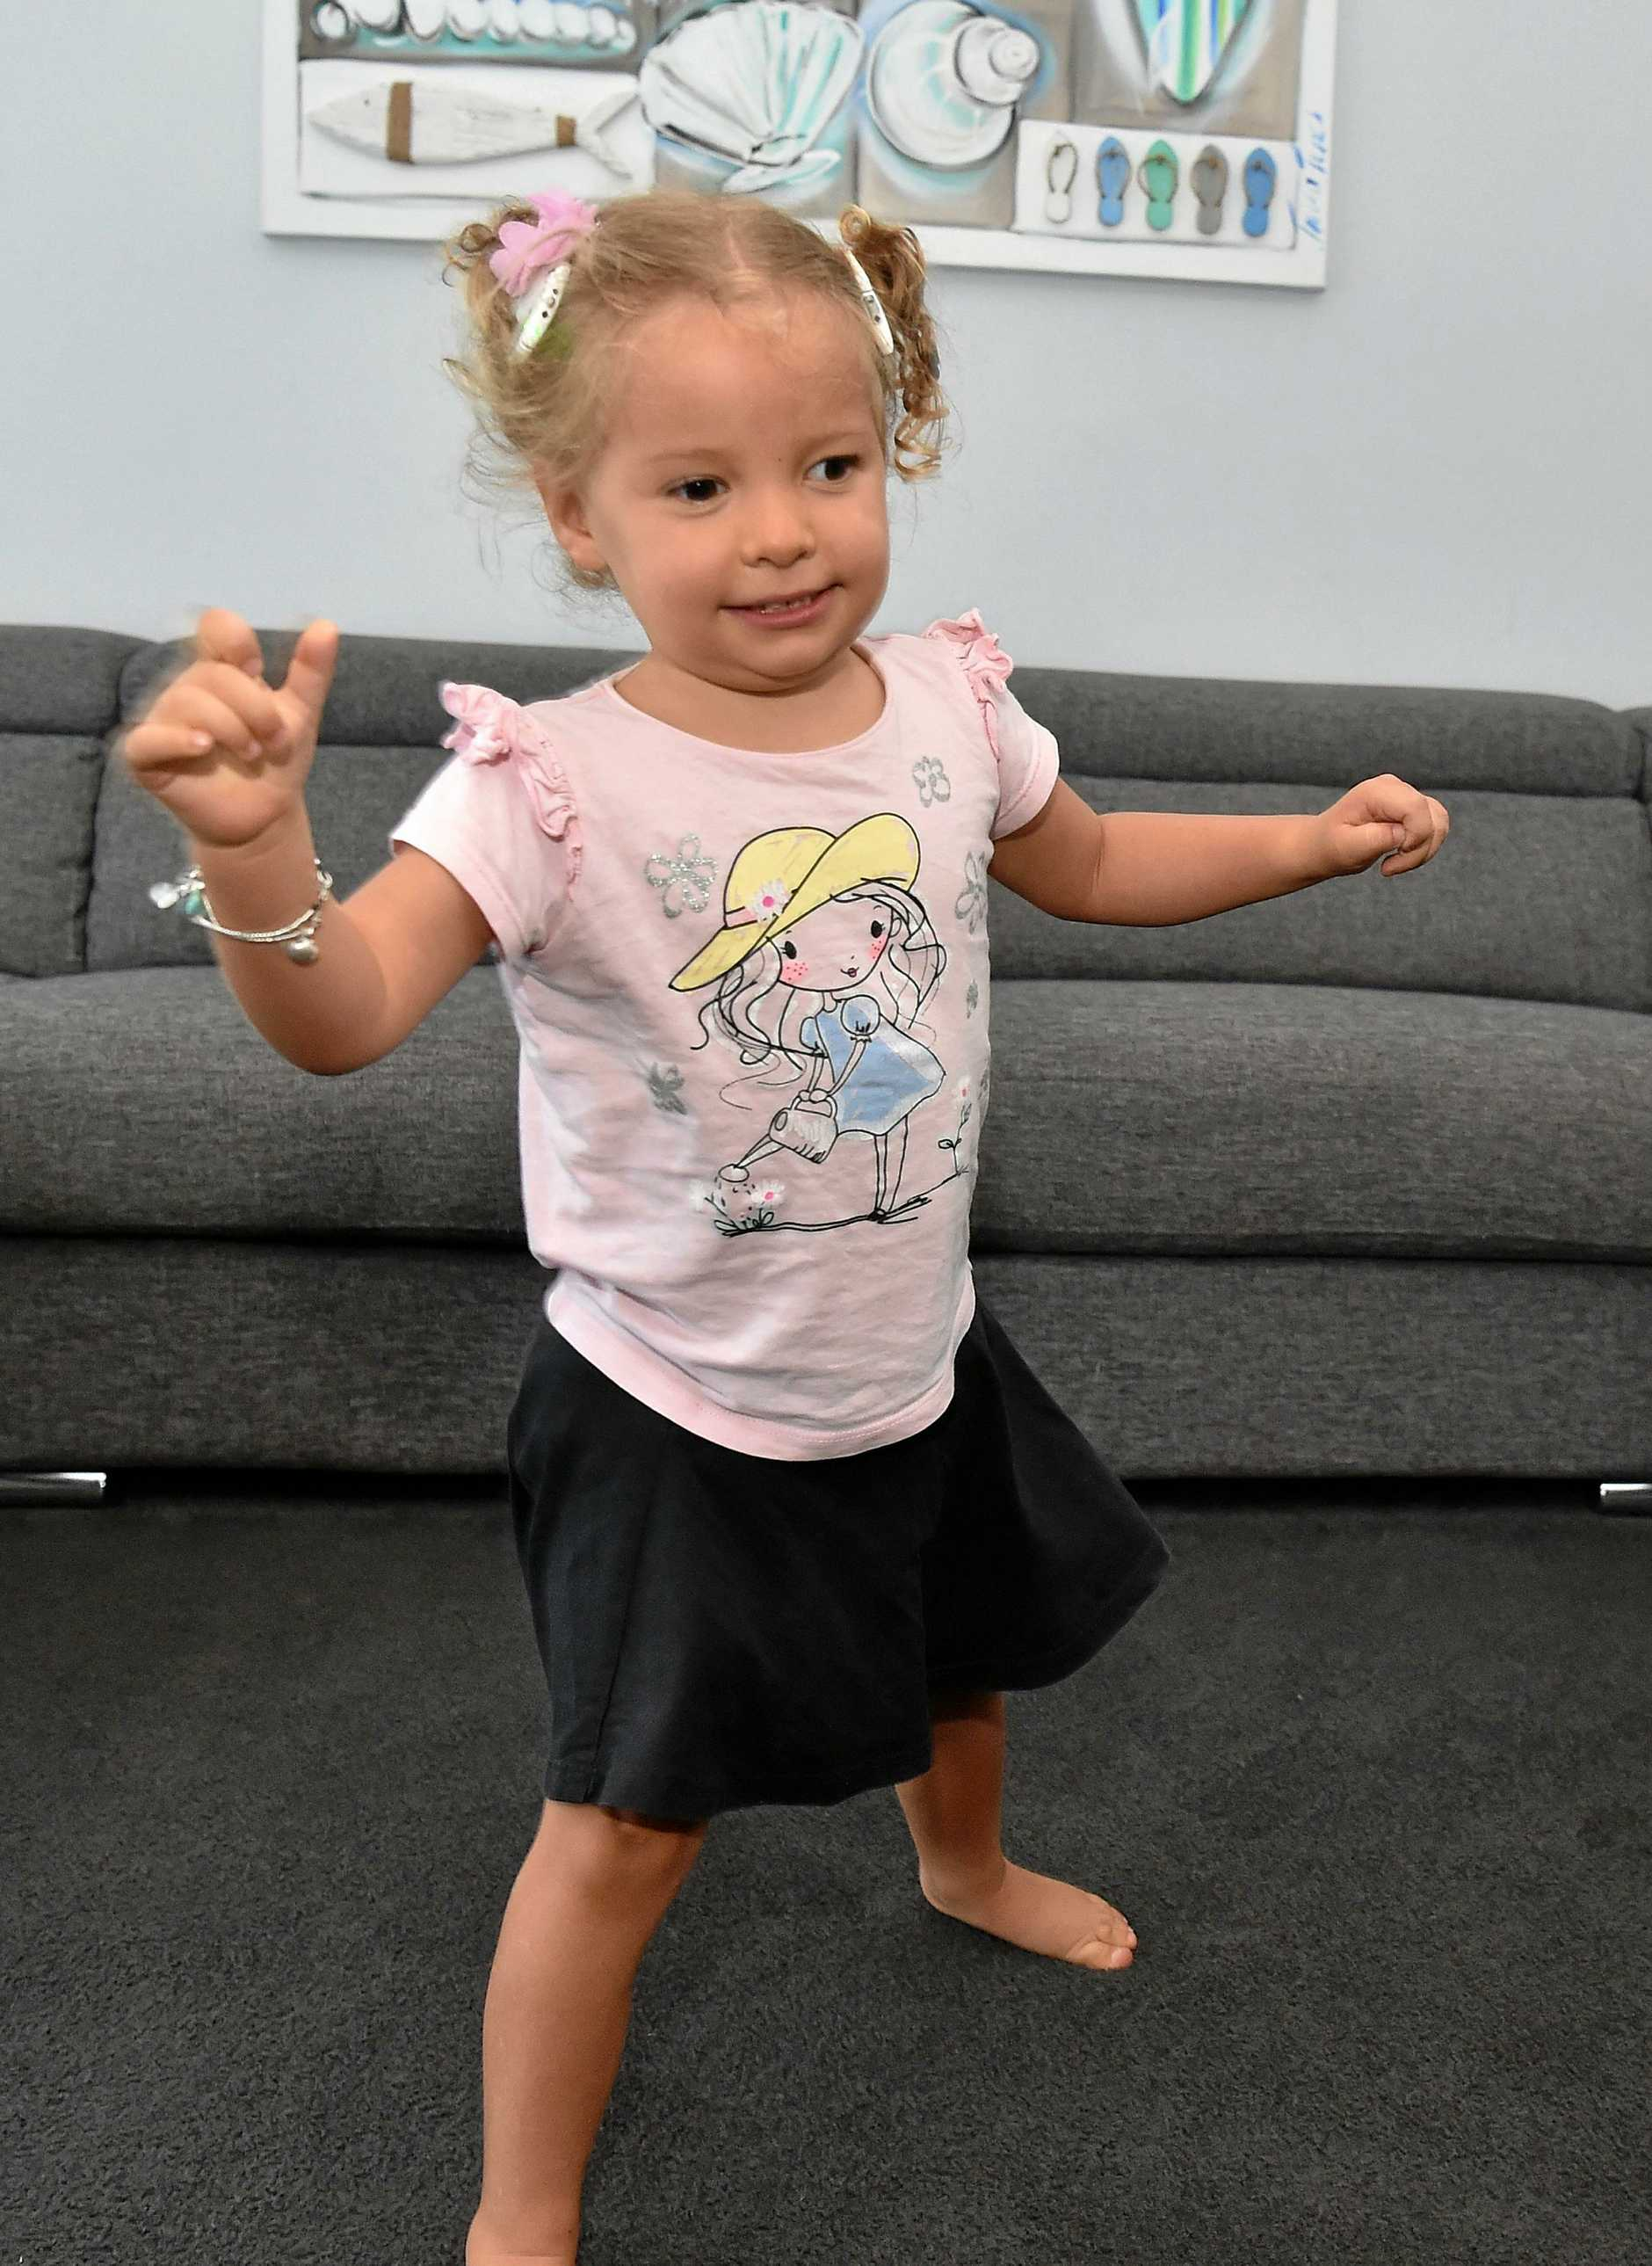 Three-year-old Keira has just taken her first steps. She was born with CMV and is deaf. Her parents were told she would never walk.